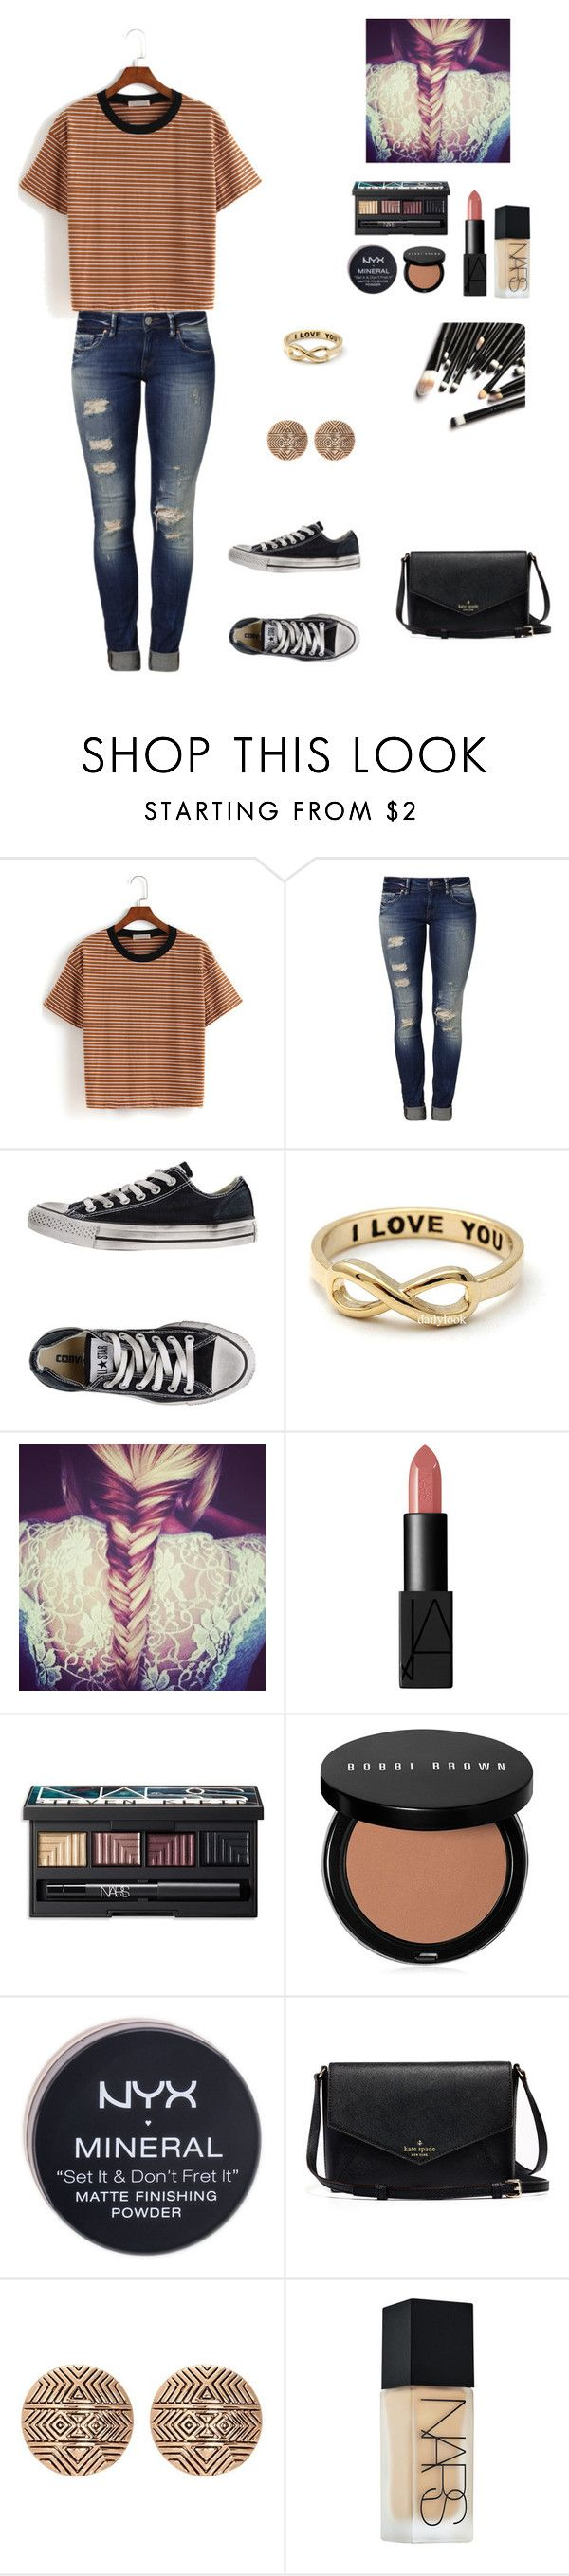 """Untitled No. 24"" by megan-113 ❤ liked on Polyvore featuring Mavi, Converse, NARS Cosmetics, Bobbi Brown Cosmetics, NYX and House of Harlow 1960"